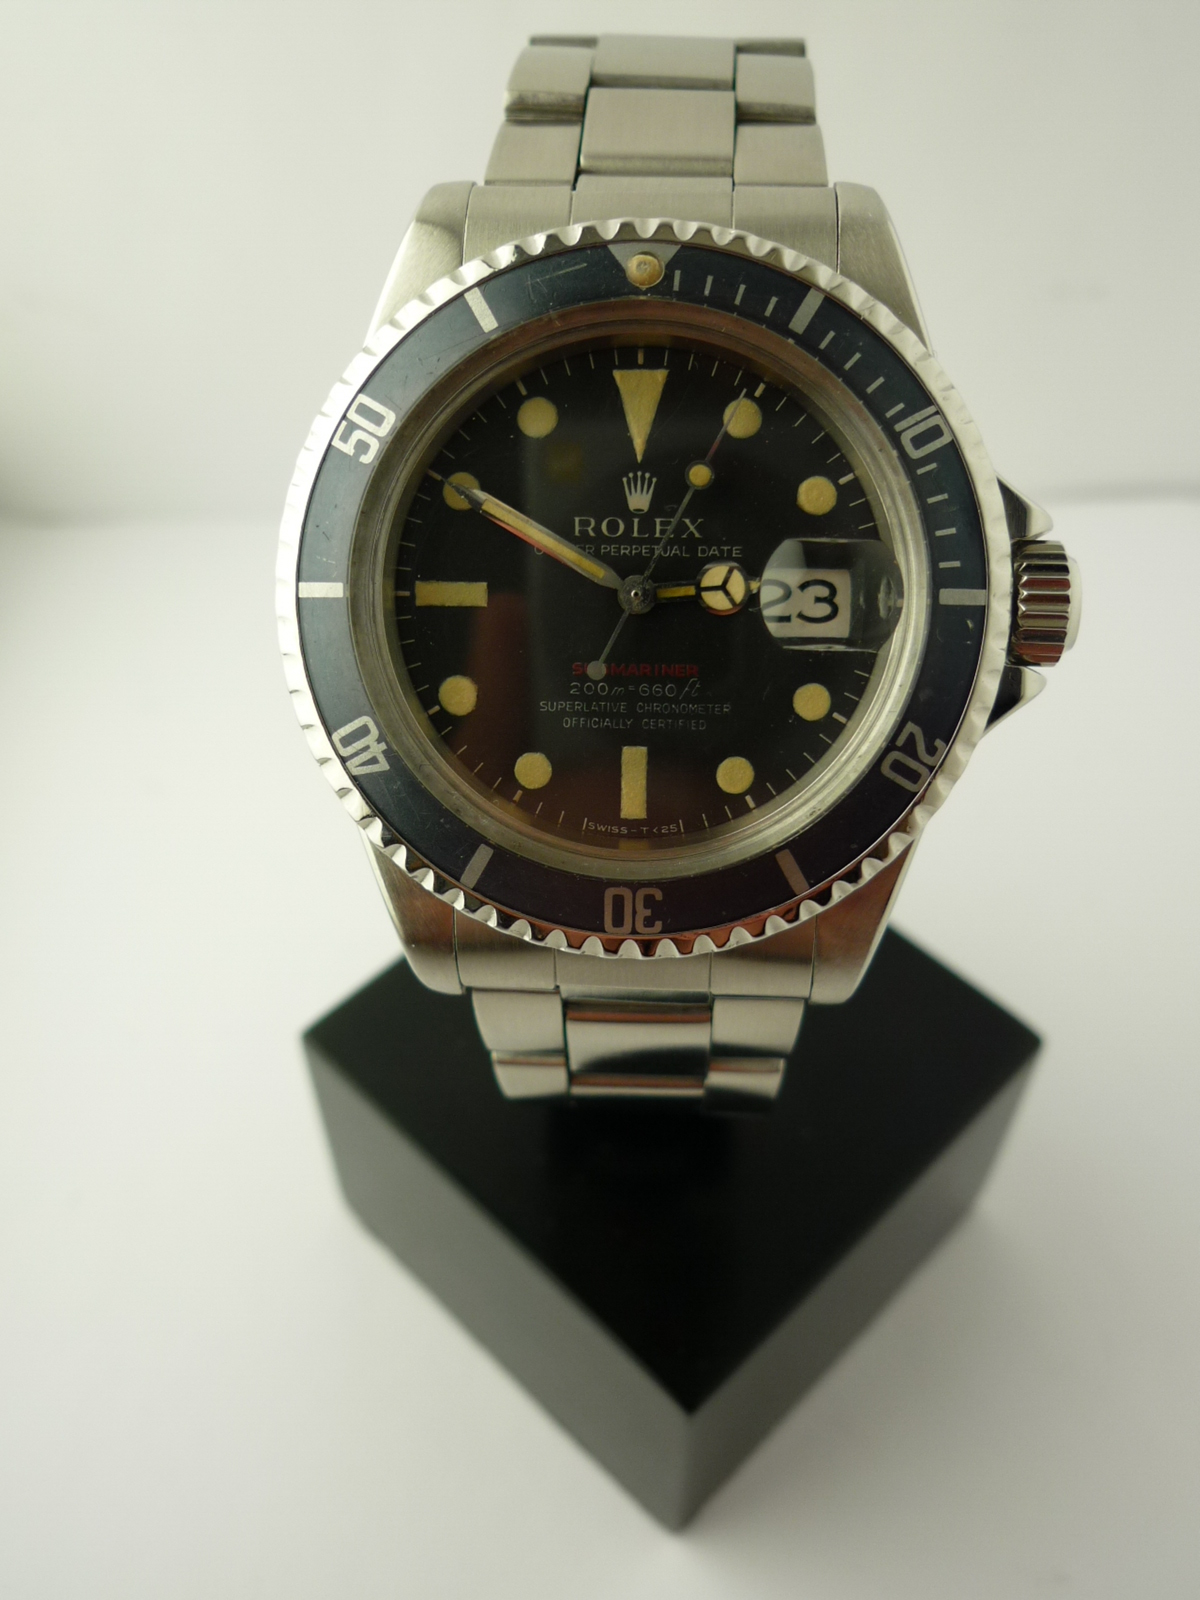 Rolex Red Submariner ref 1680 (1967)